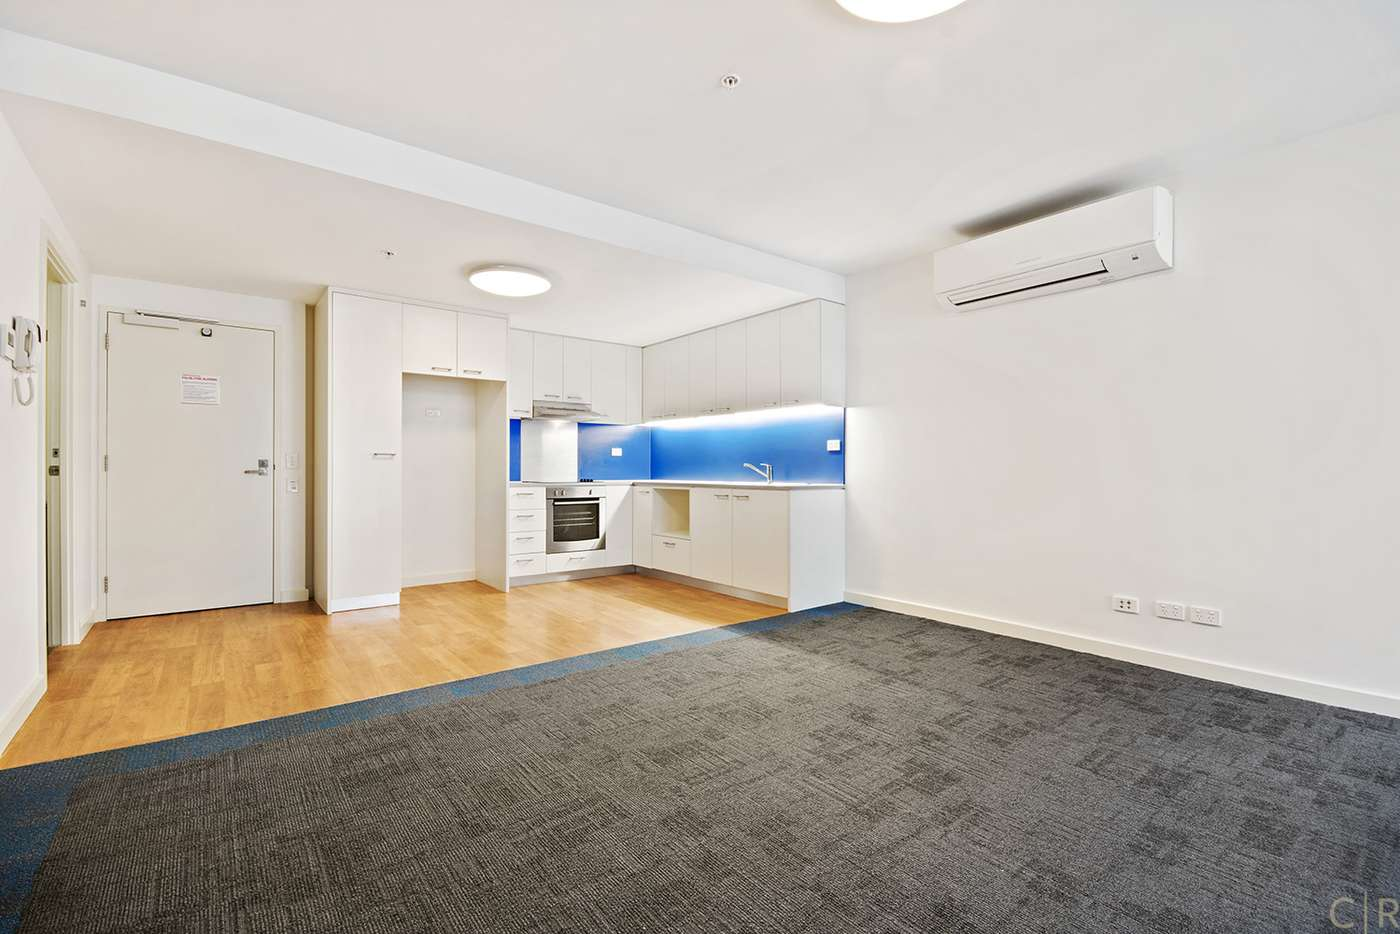 Fifth view of Homely apartment listing, 1205/102 Waymouth Street, Adelaide SA 5000